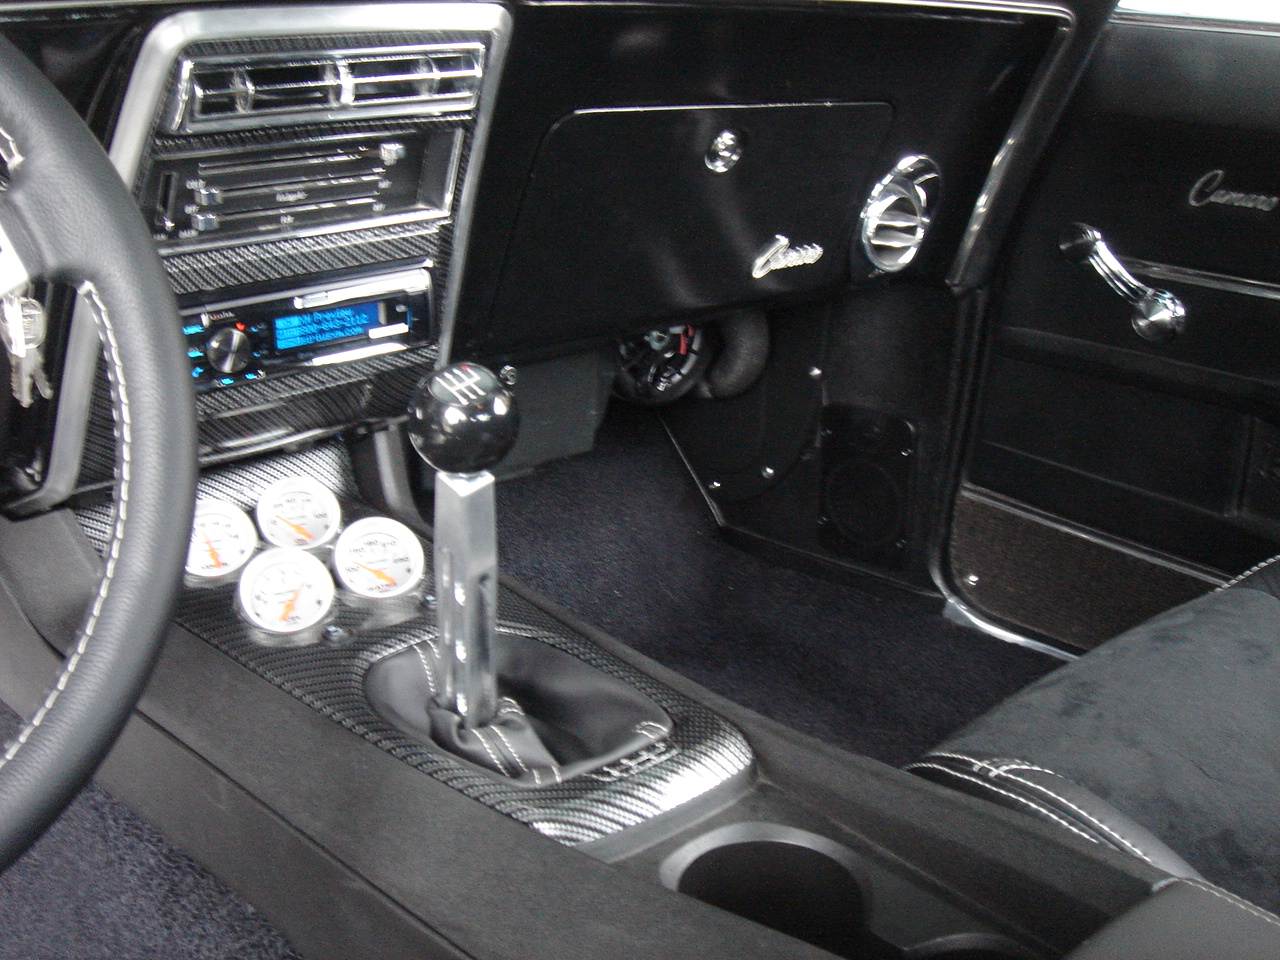 6Th Gen Camaro >> A few Interior pics of my 68' camaro with single din radio ...